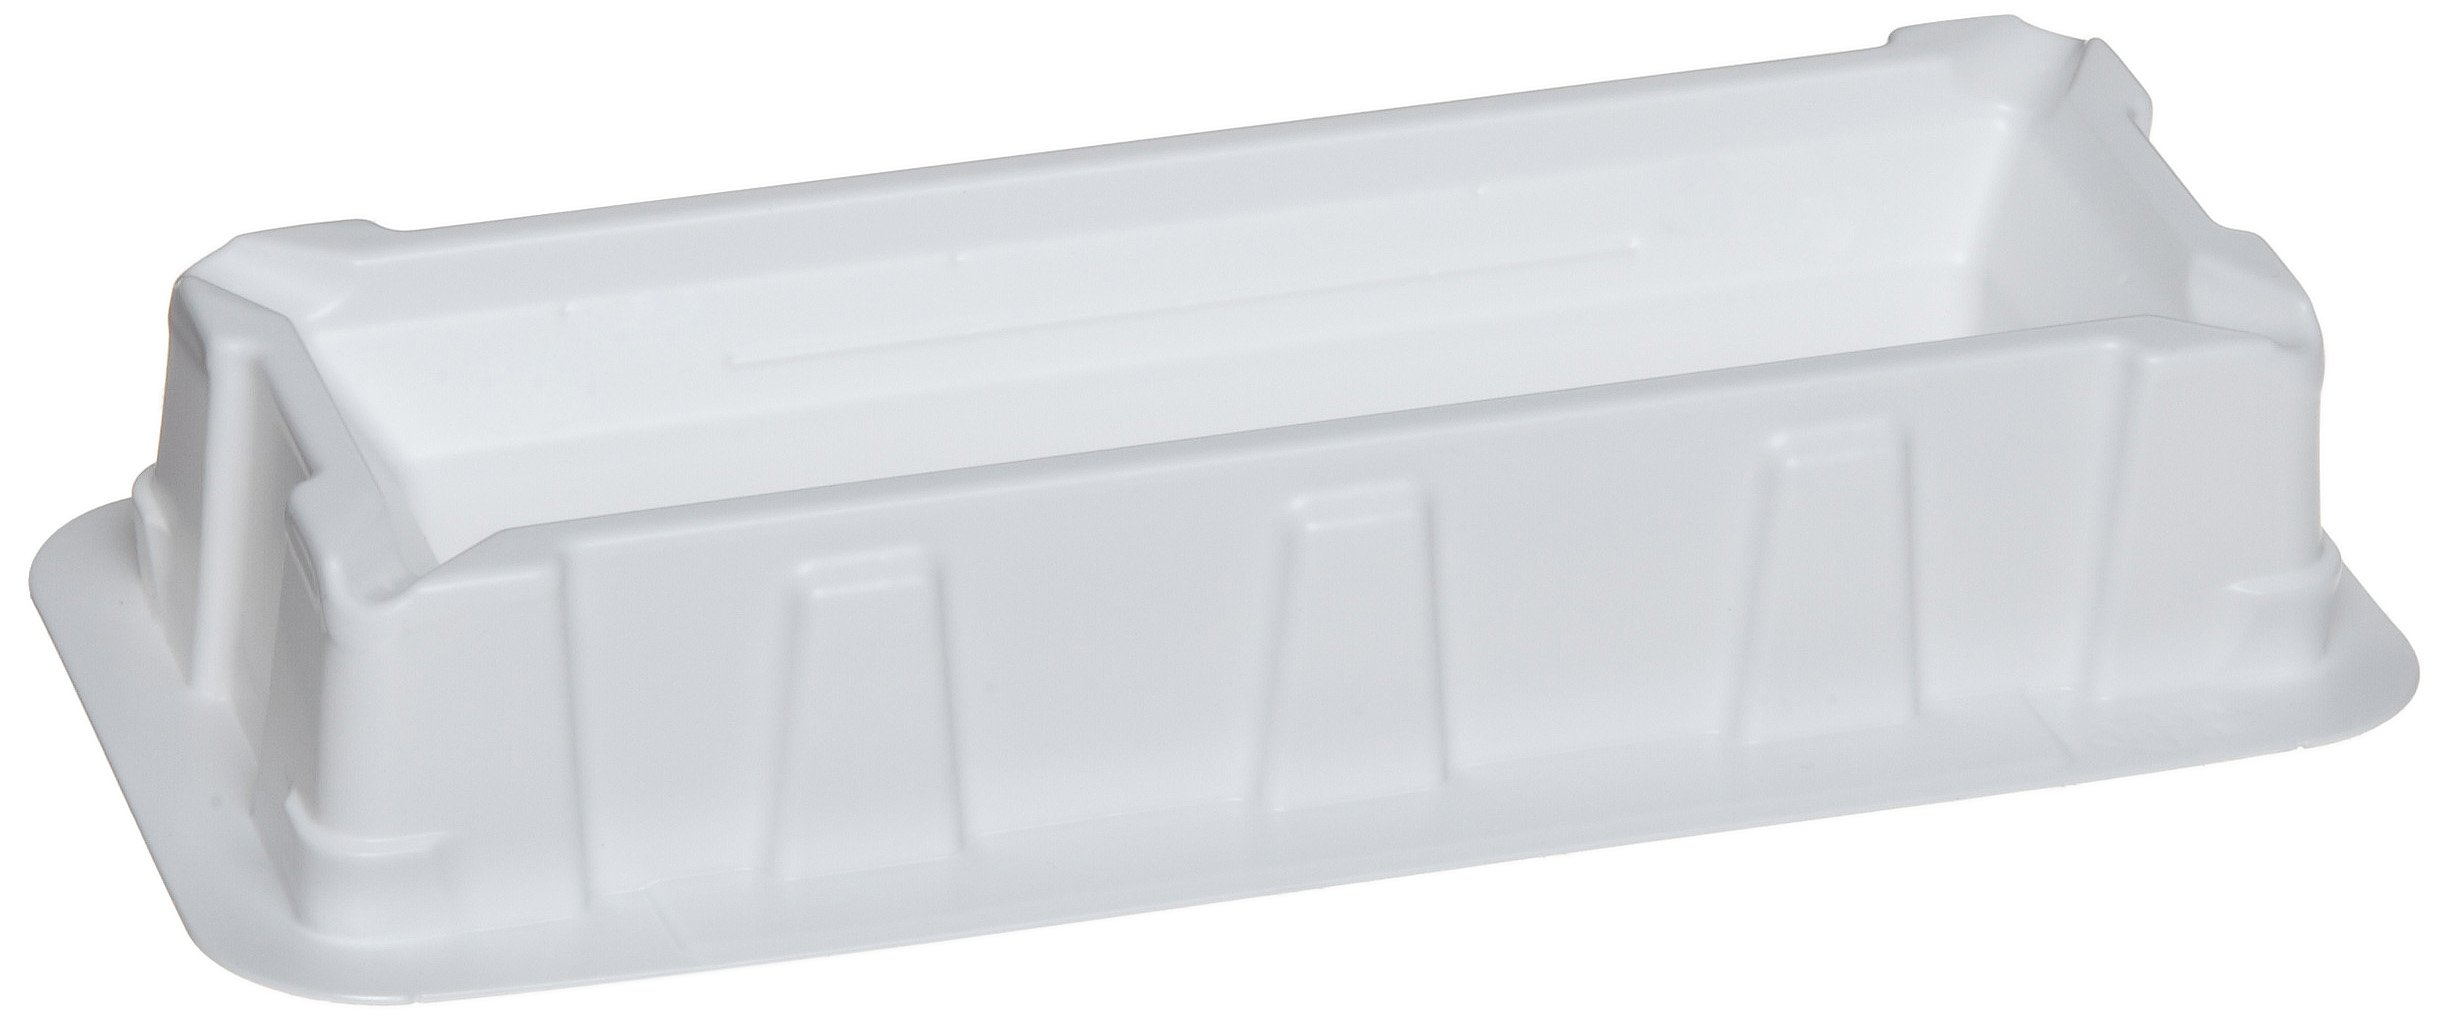 Chemglass CLS-3798-007 Pipetting Reservoir, 25mL Capacity, Polystyrene, White (Pack of 100)